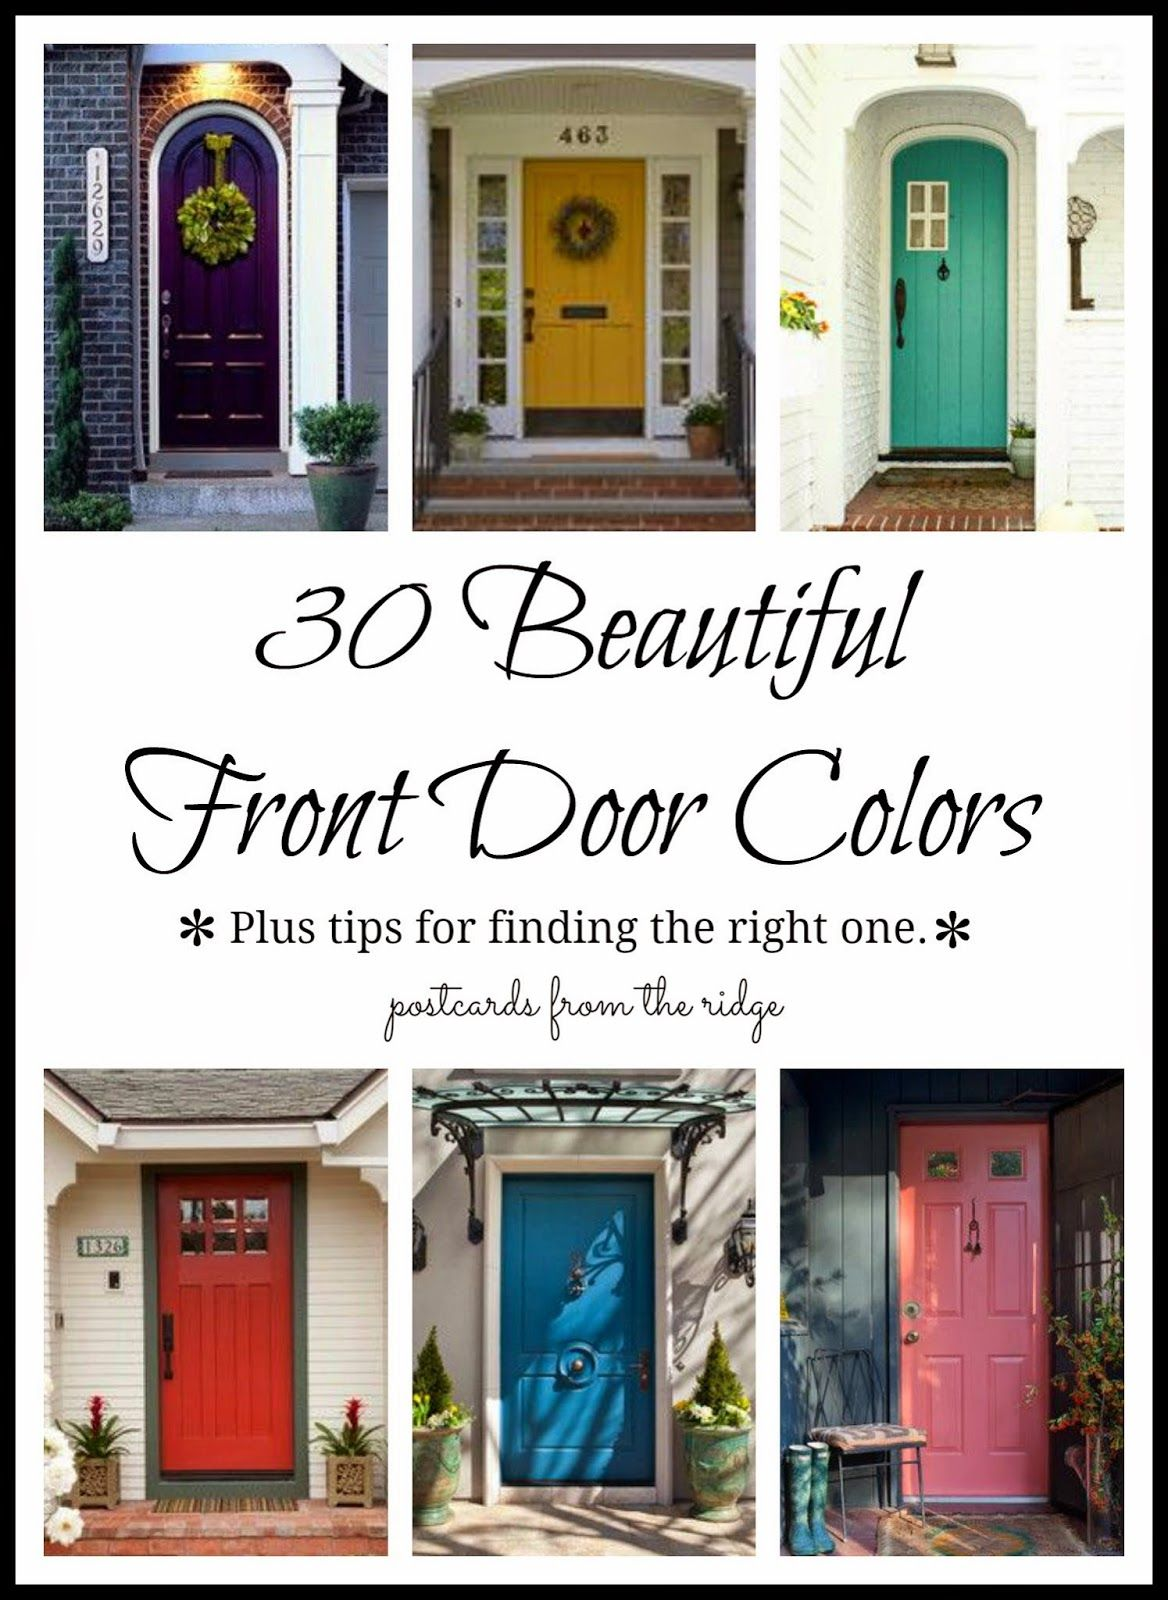 30 front door colors with tips for choosing the right one 30 front door colors with tips for choosing the right one rubansaba